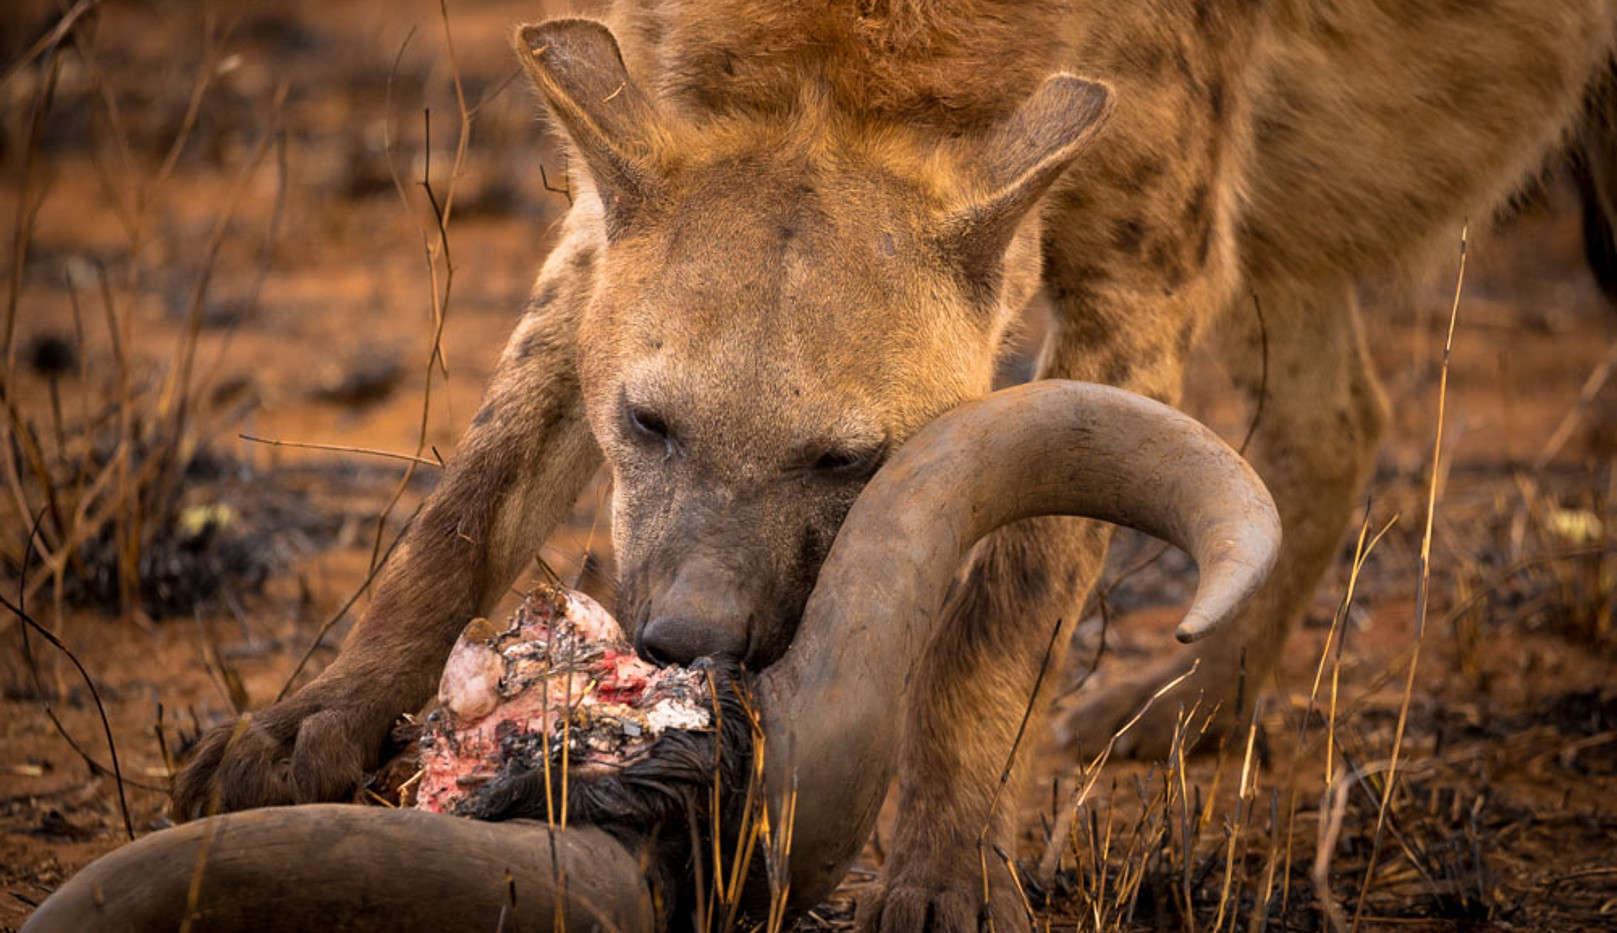 Hyena feeding on a carcass